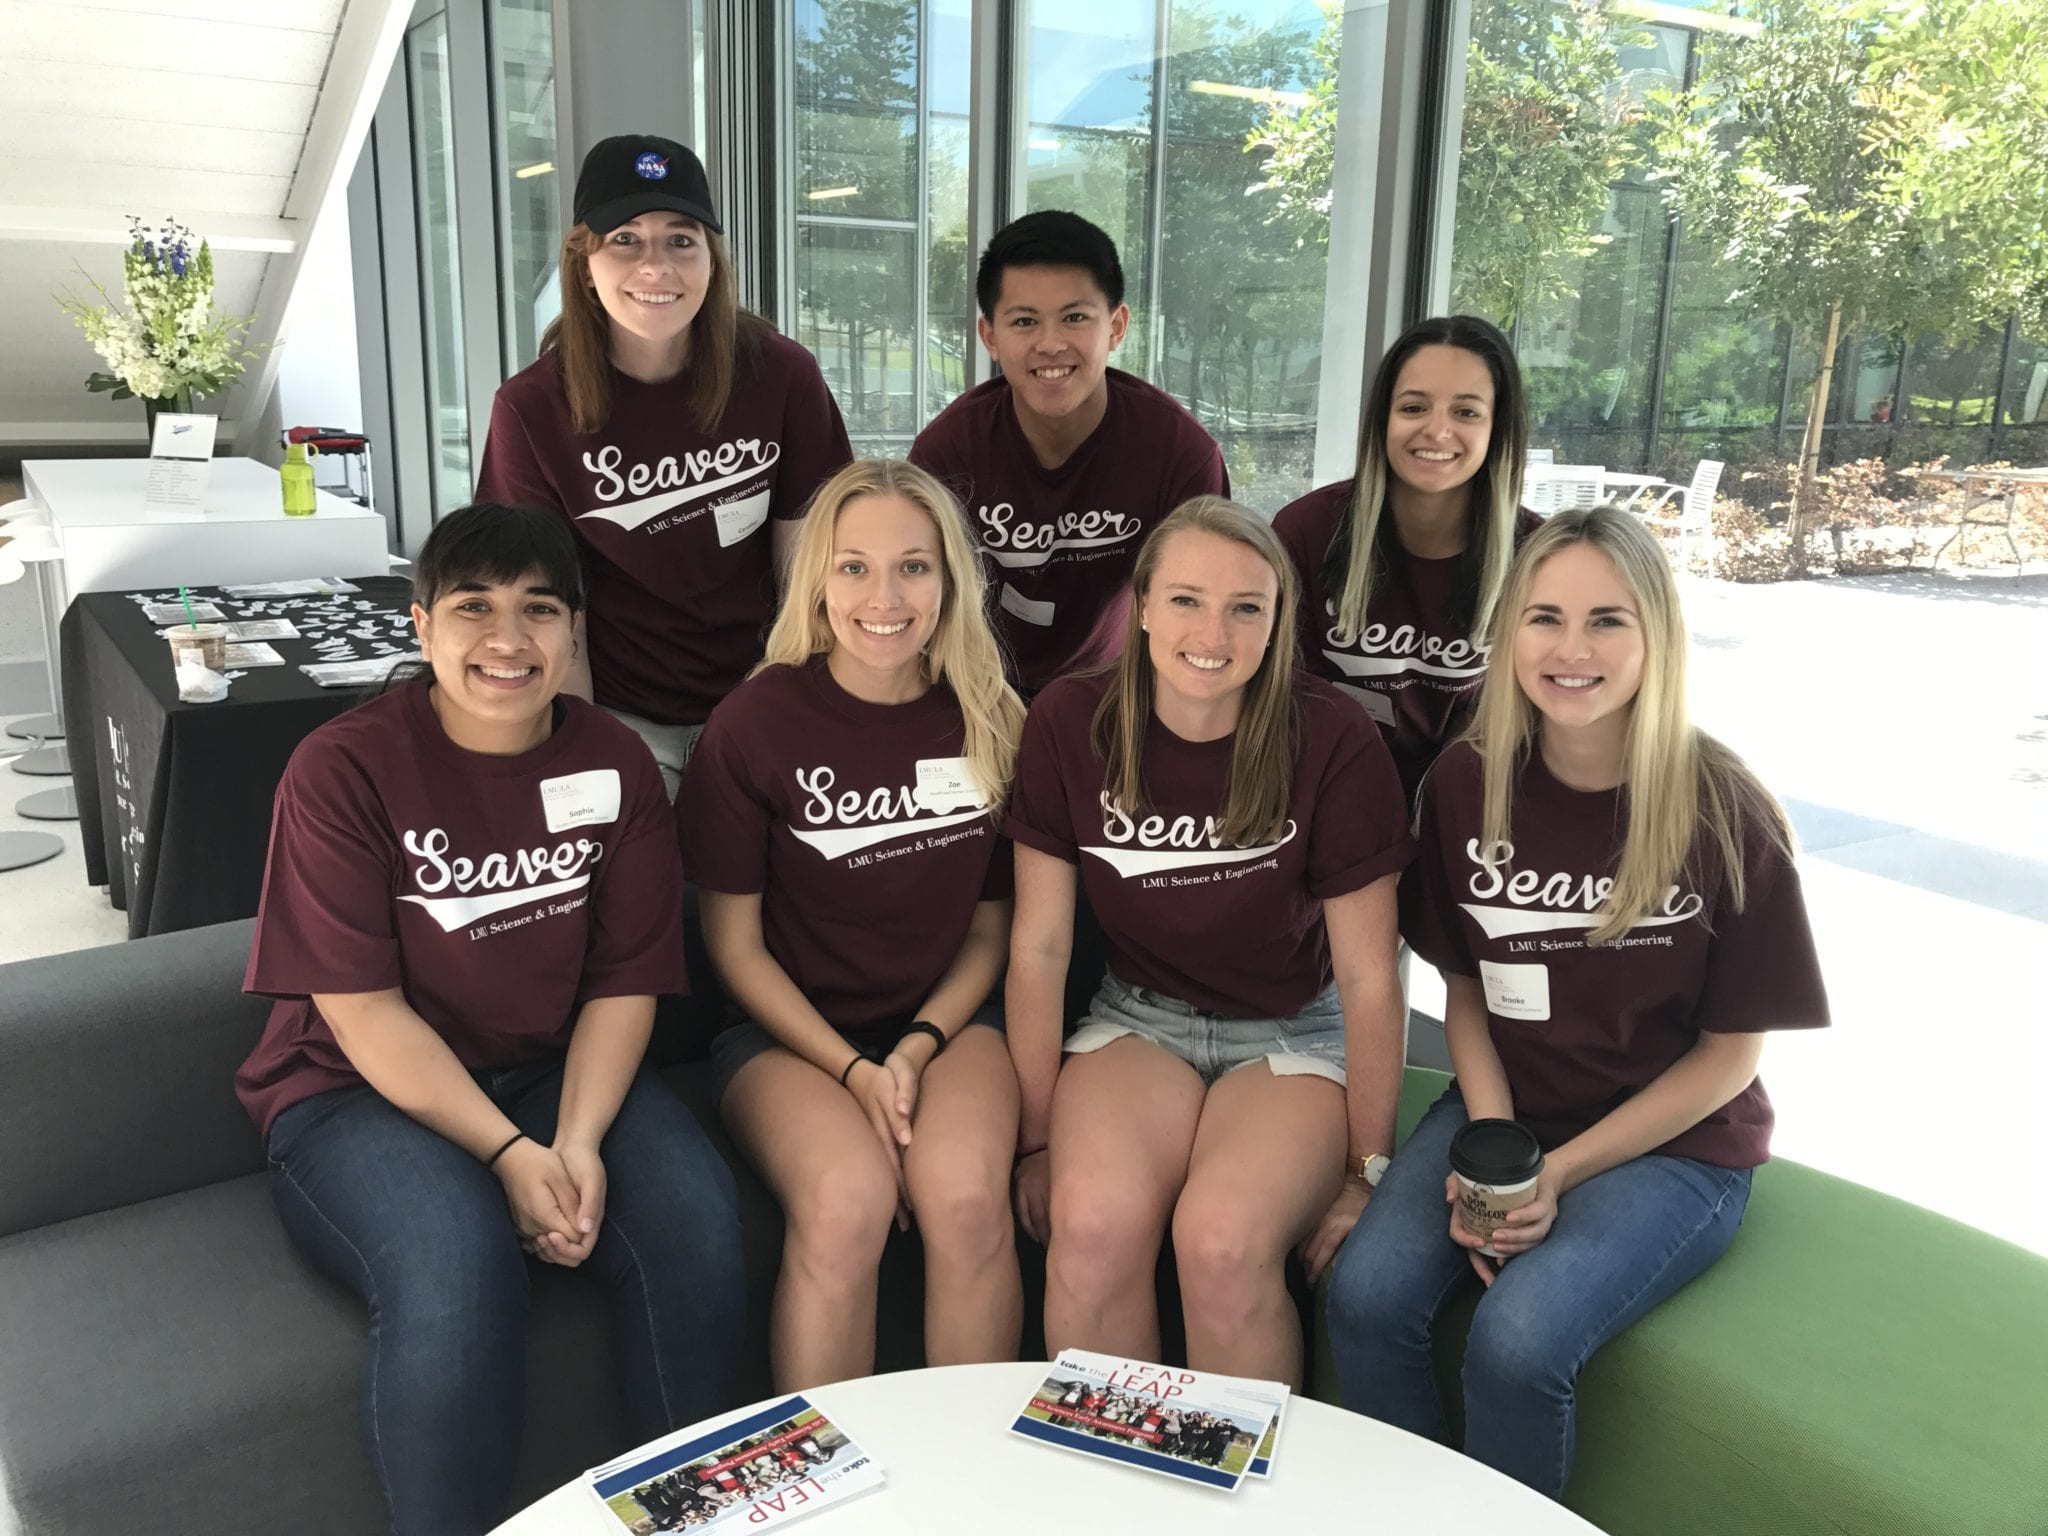 HHSC student helpers smiling for a photo